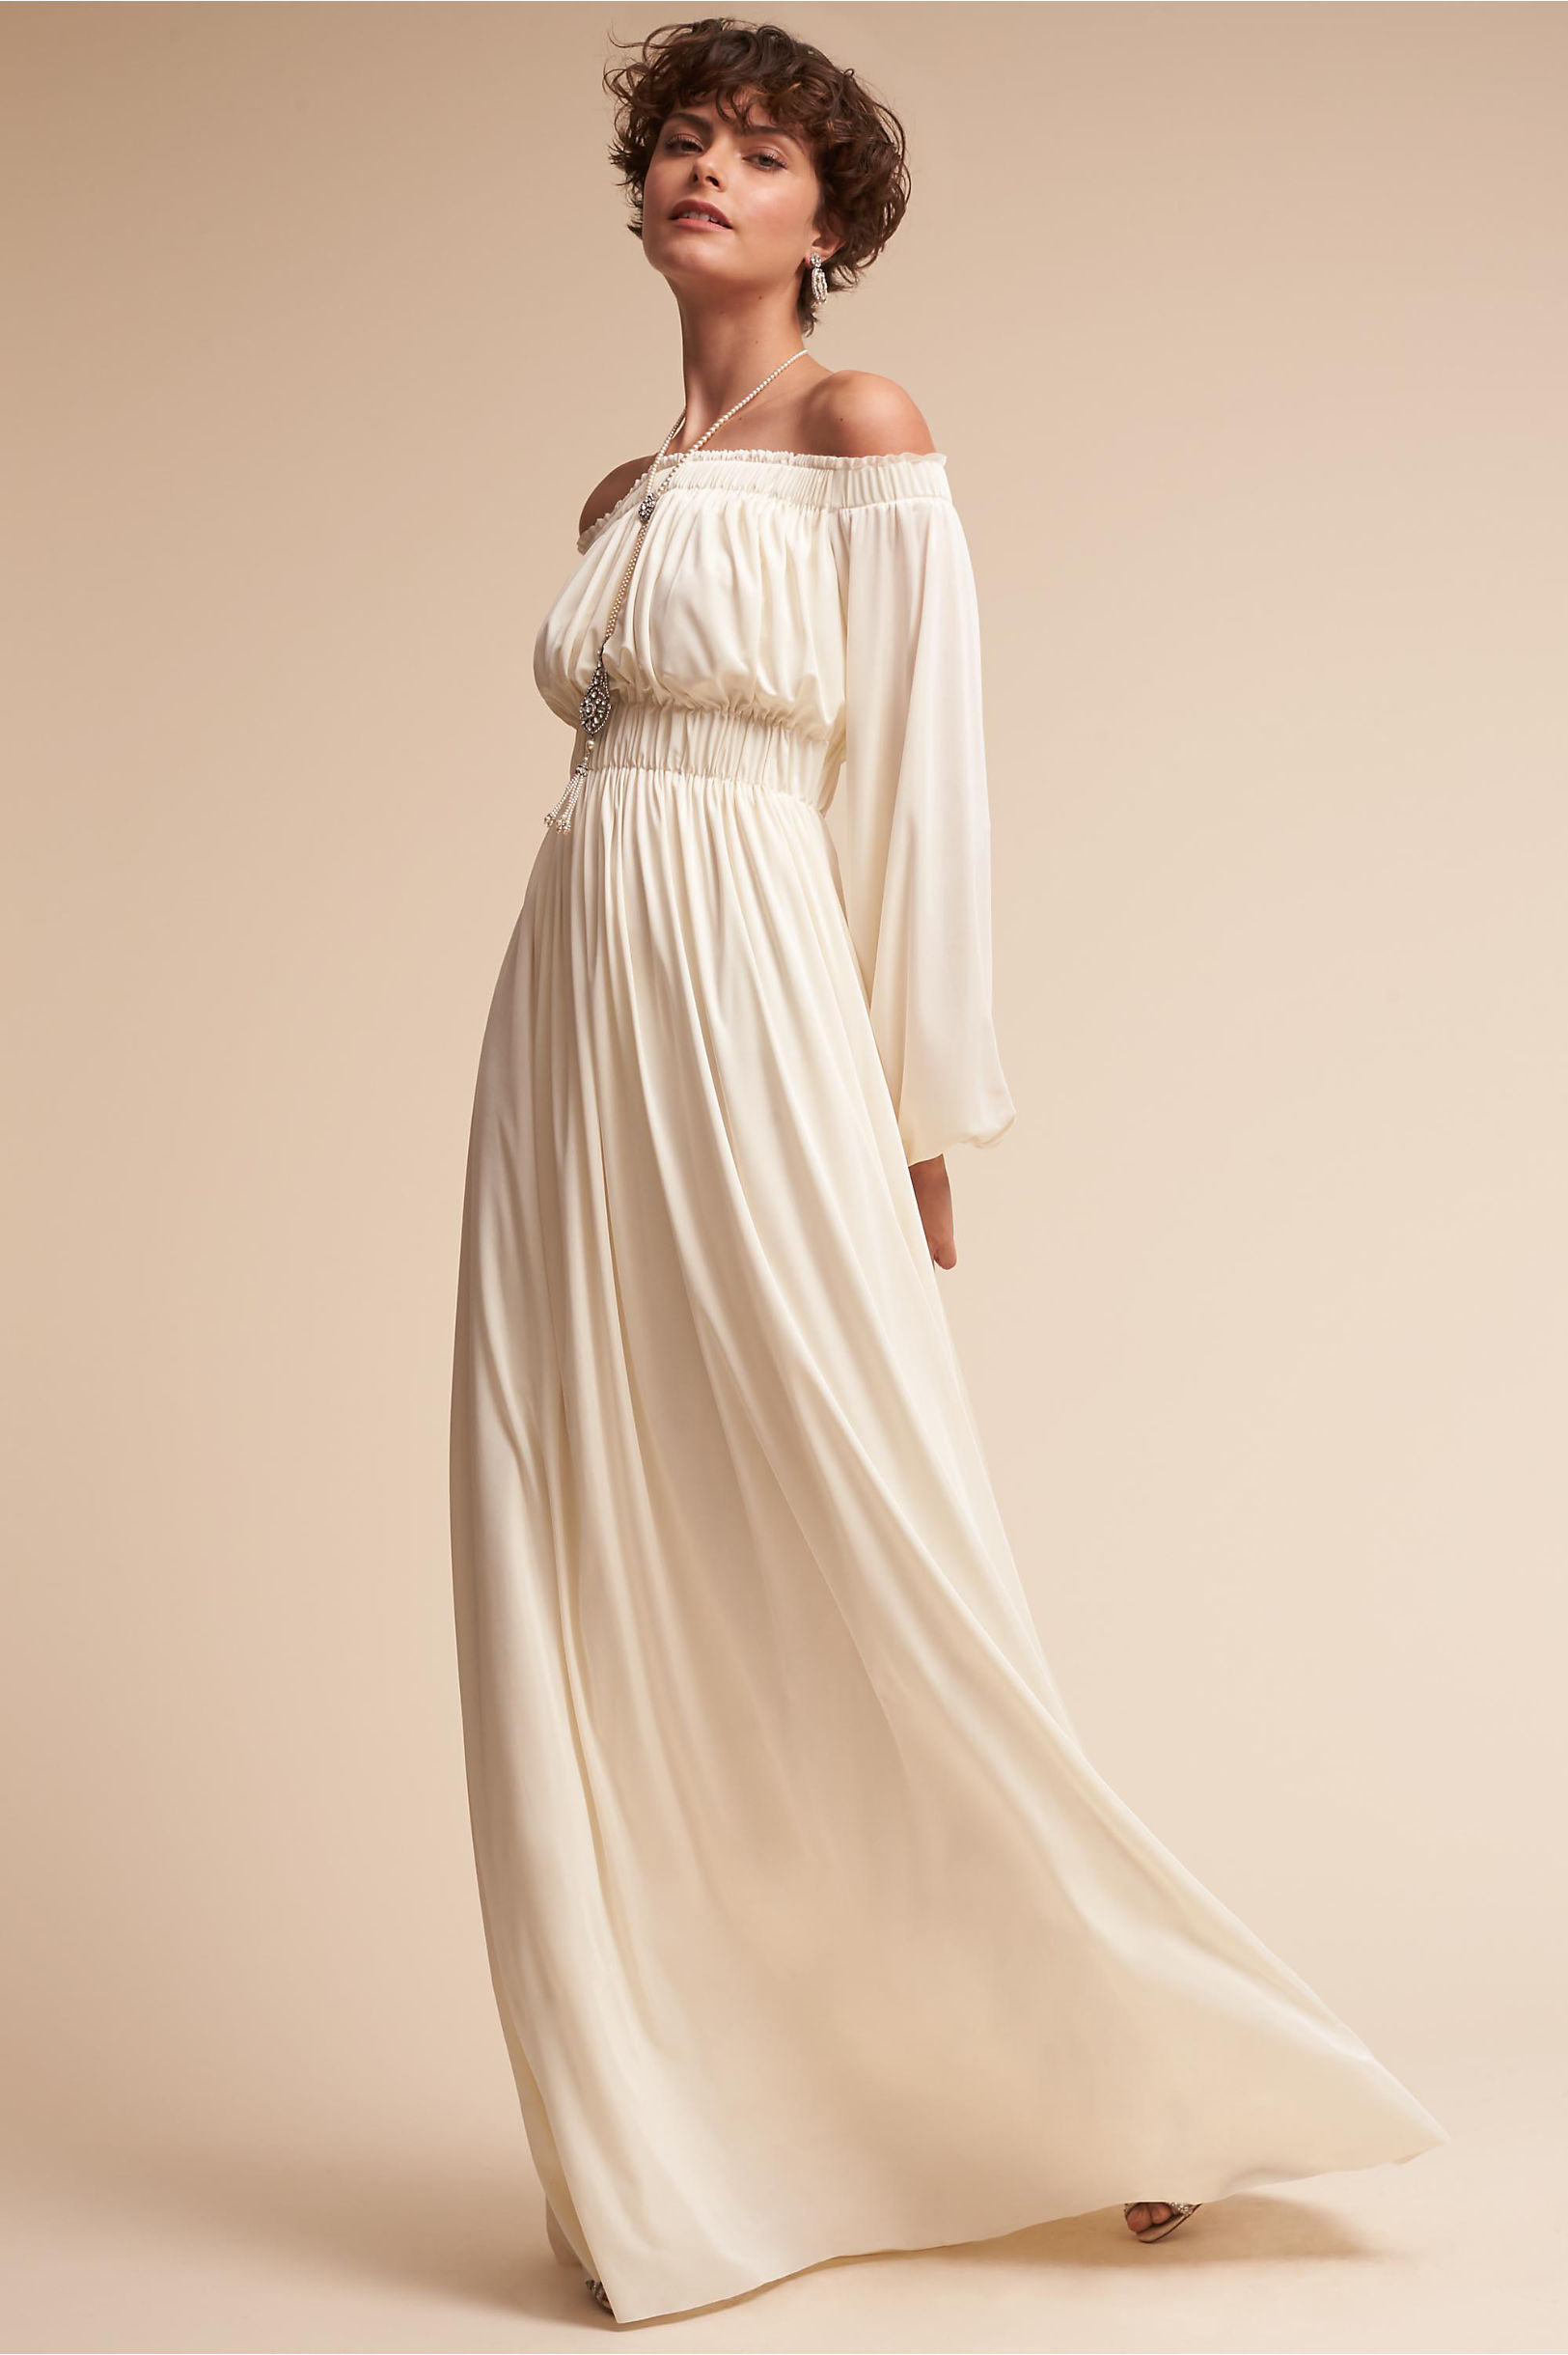 11offtheshoulder Wedding Dress: 1970 Dresses Vintage Weddings At Reisefeber.org